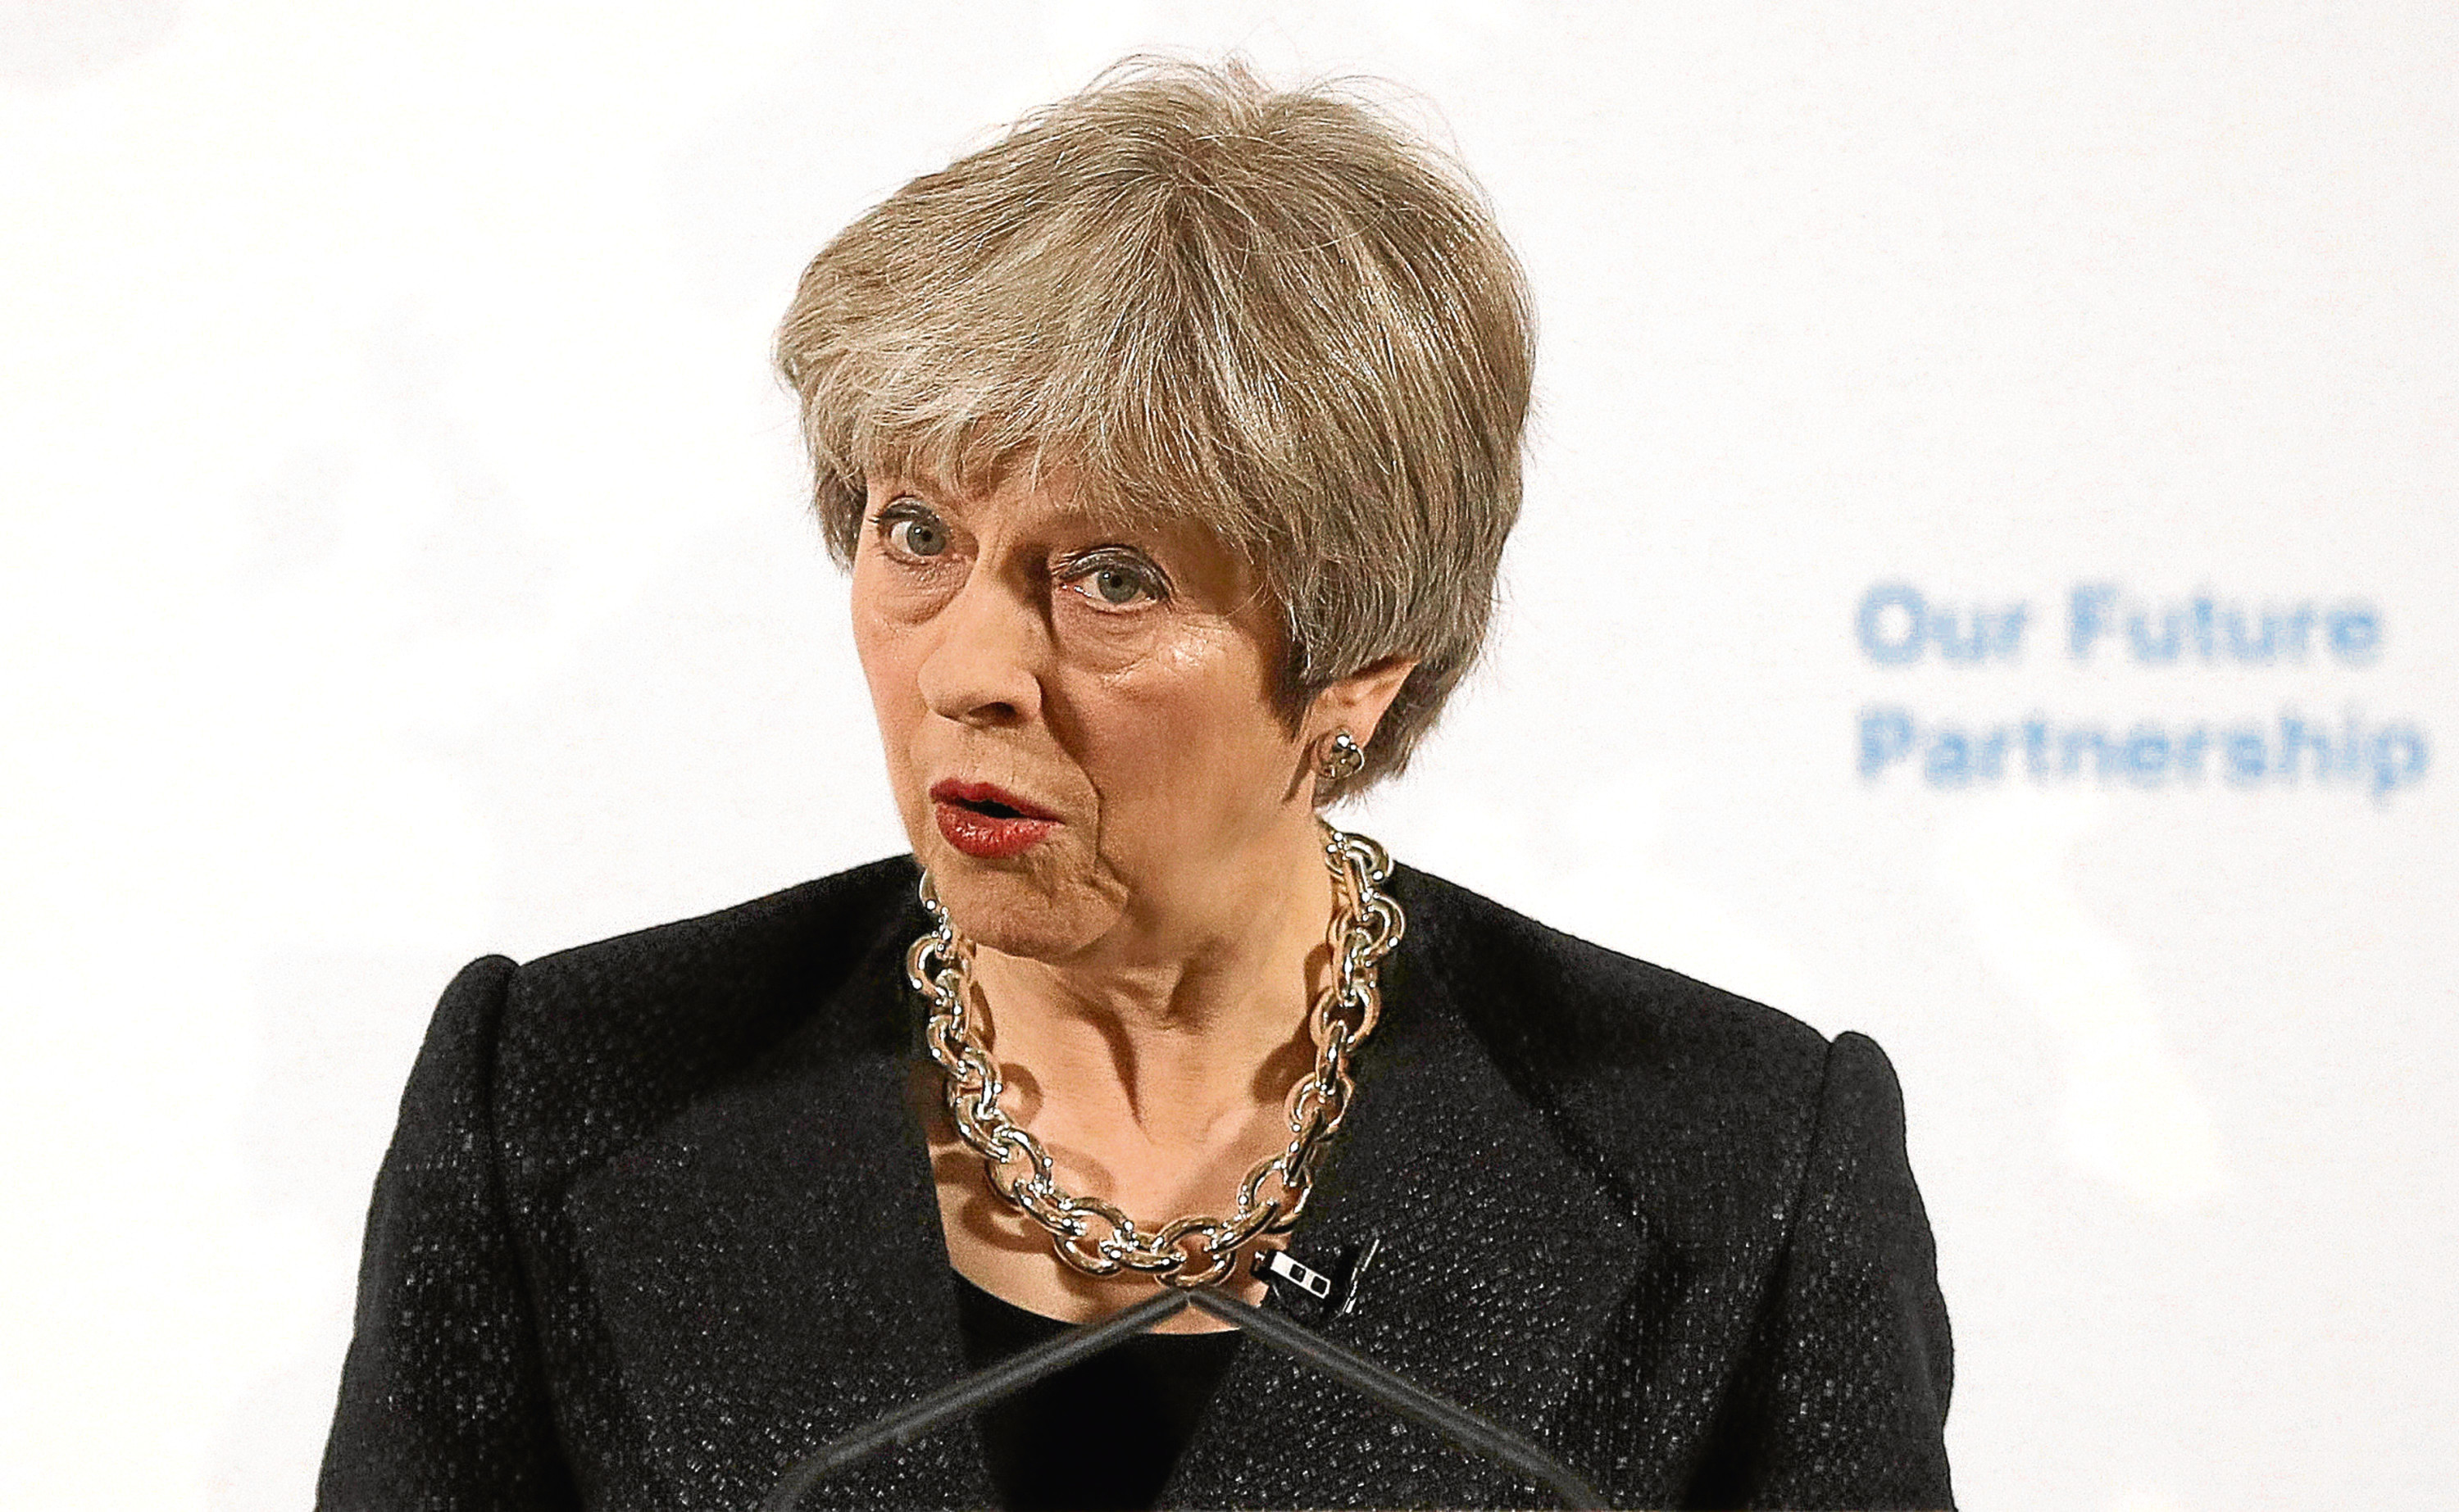 Theresa May (Peter Nicholls - WPA Pool / Getty Images)